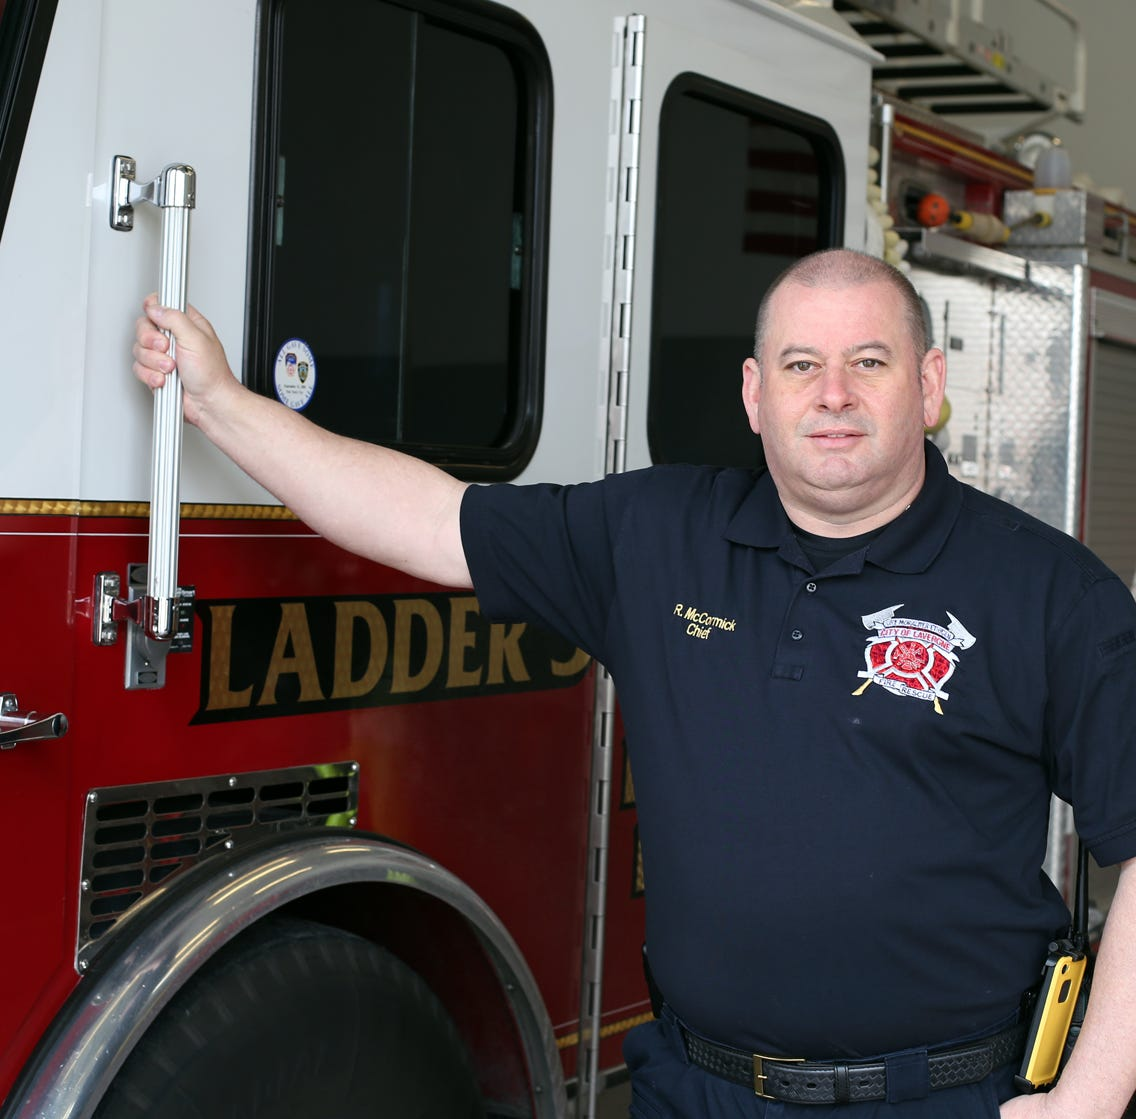 Rick McCormick, served as a firefighter with La Vergne Fire Department for 20 years before being named chief in 2013.